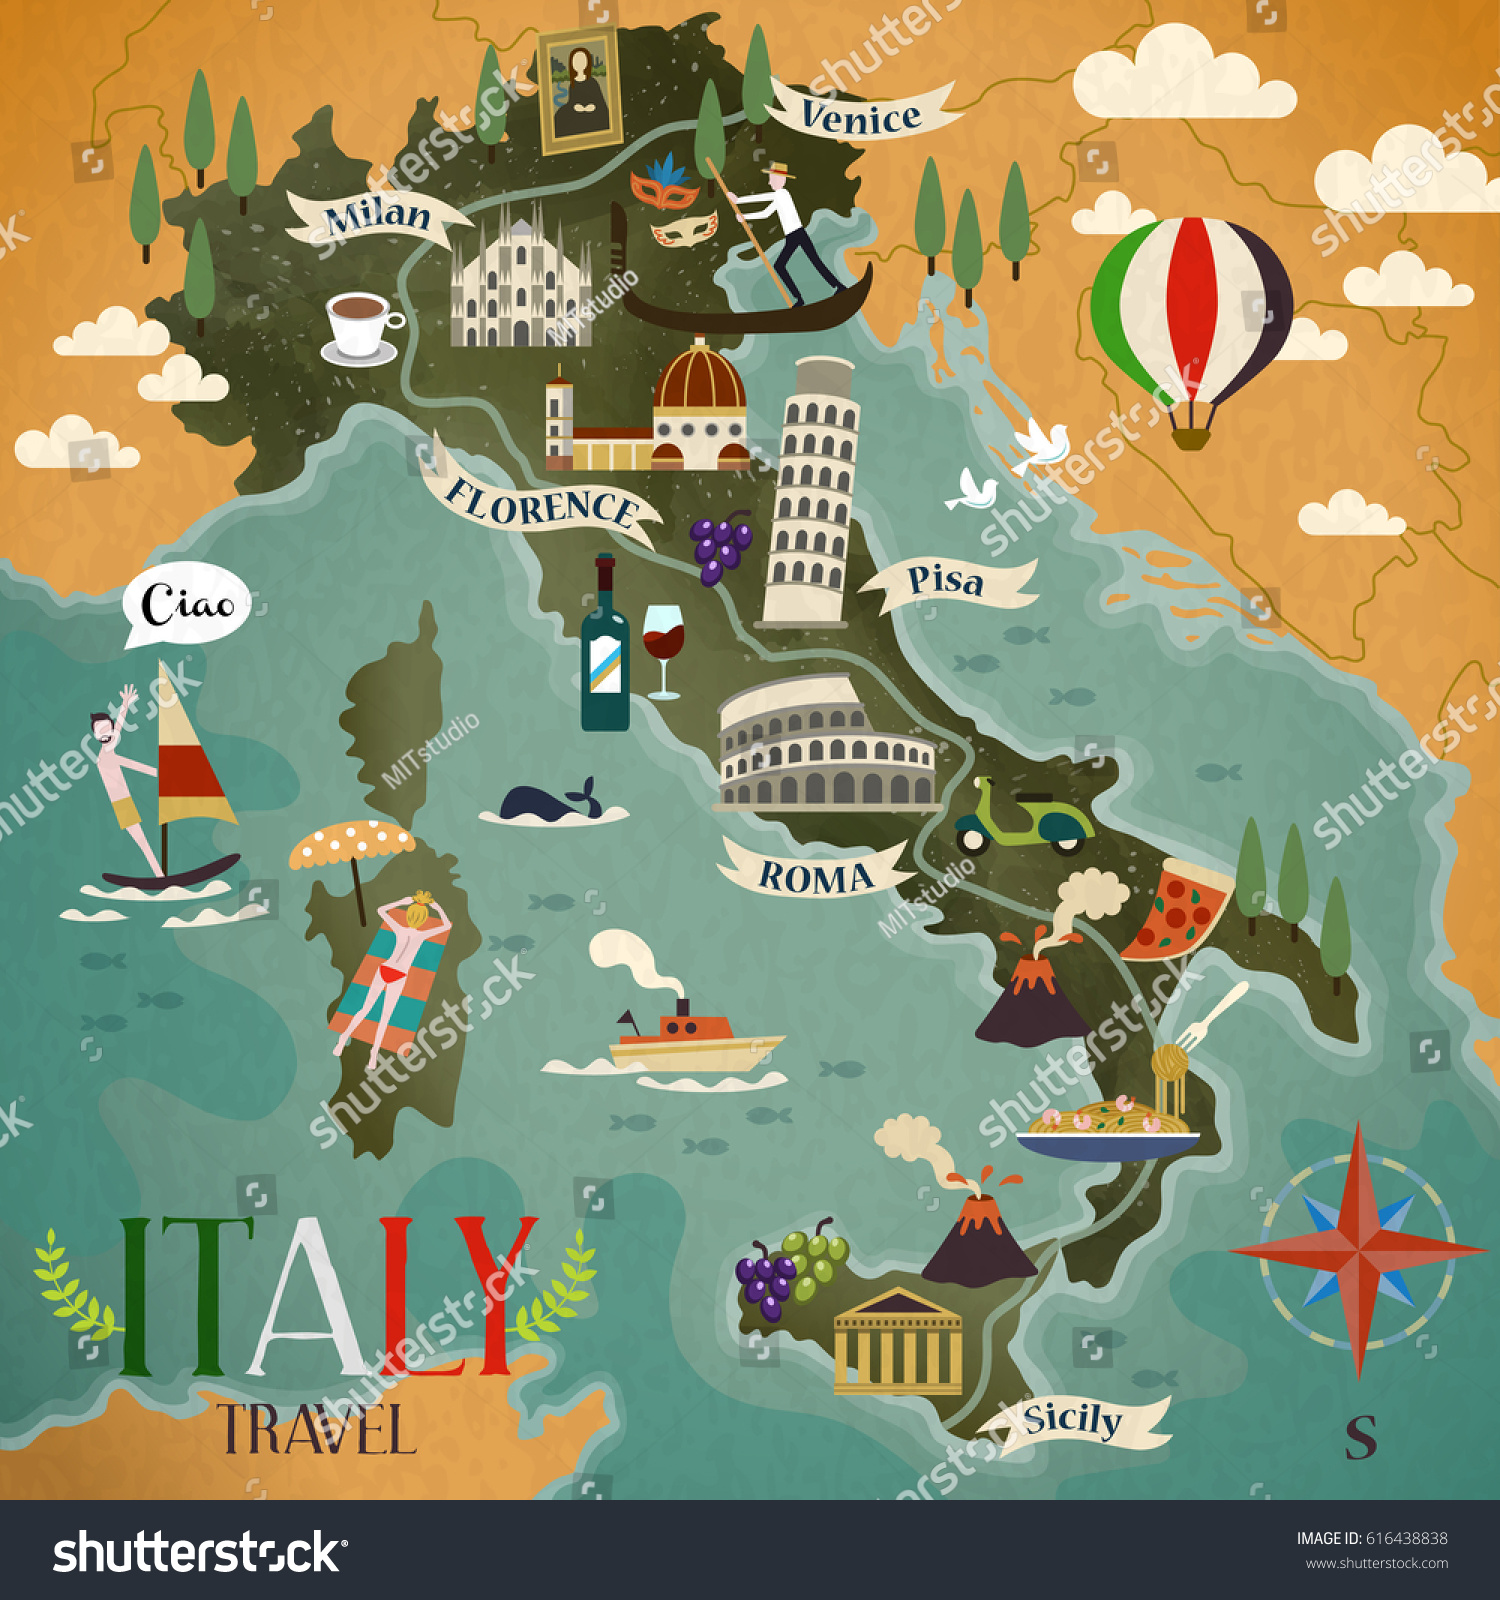 Colorful Italy Travel Map Attraction Symbols Stock Illustration